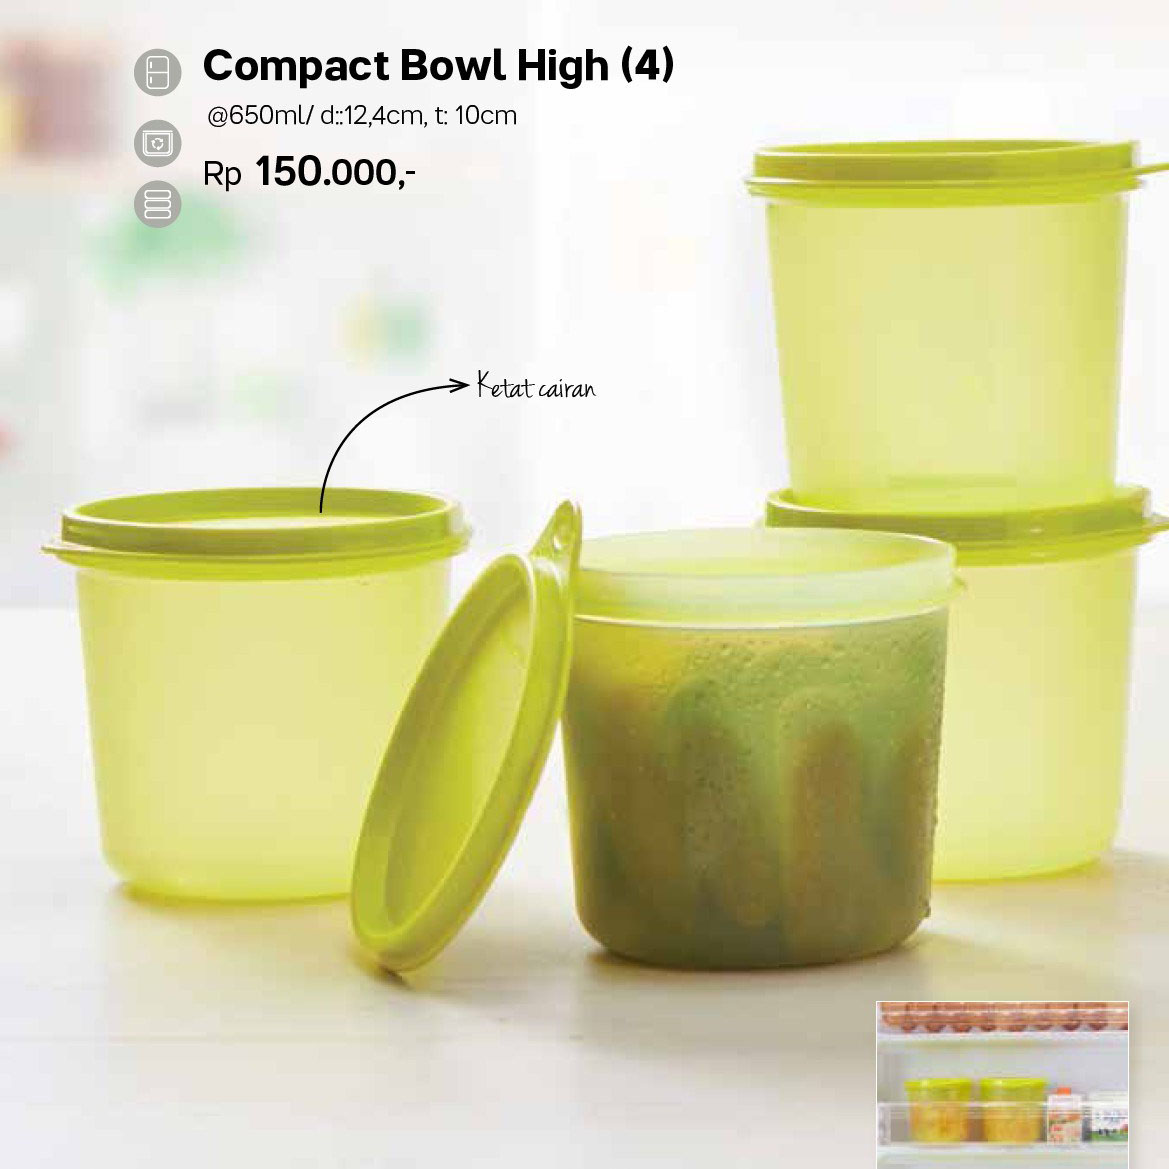 compact bowl high Tupperware